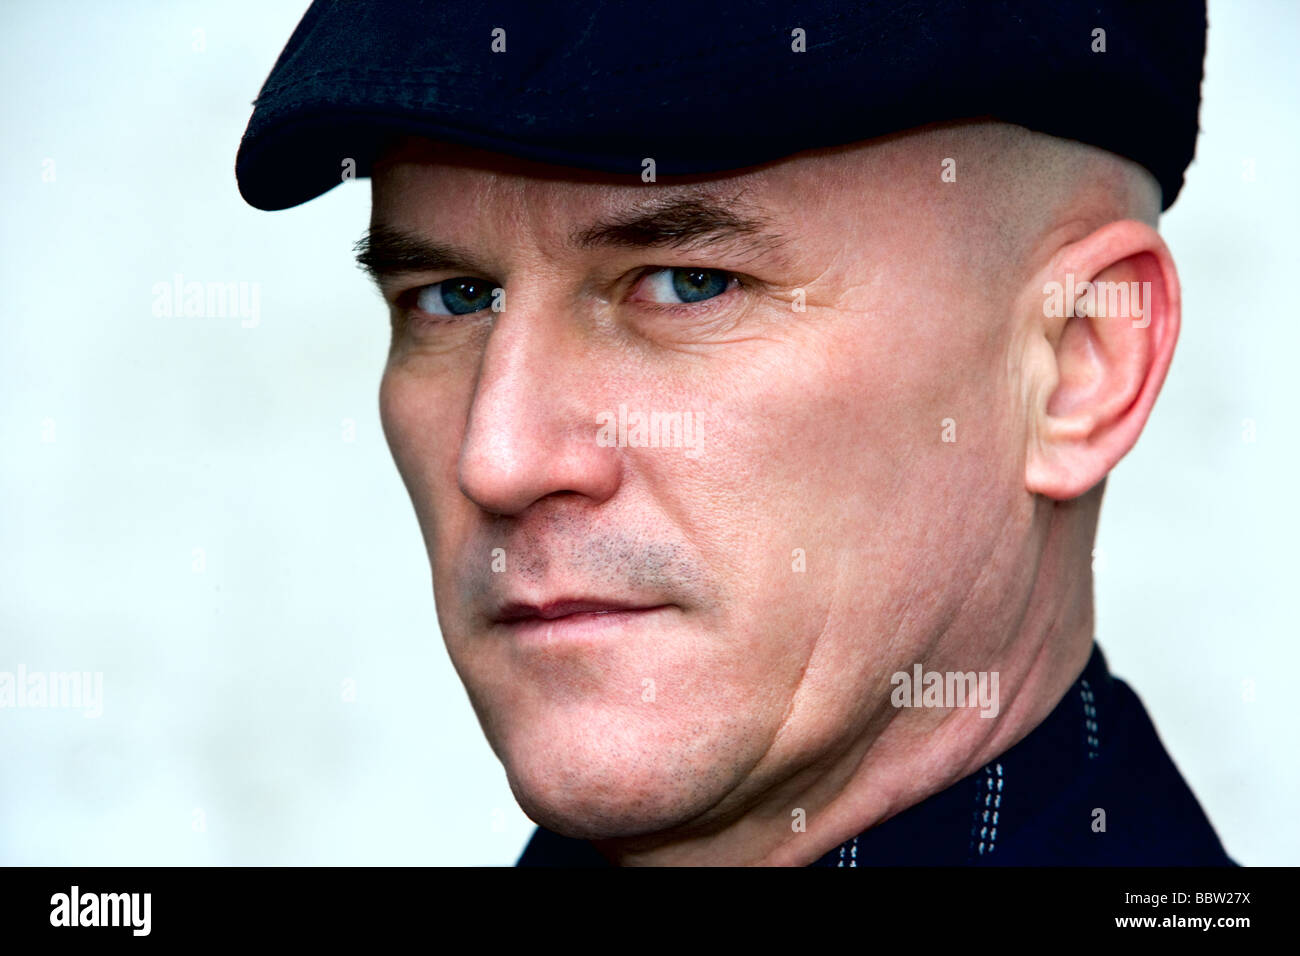 Bald man in his late 40 s wearing a dark suit and cap Stock Photo ... df3ebefadb3